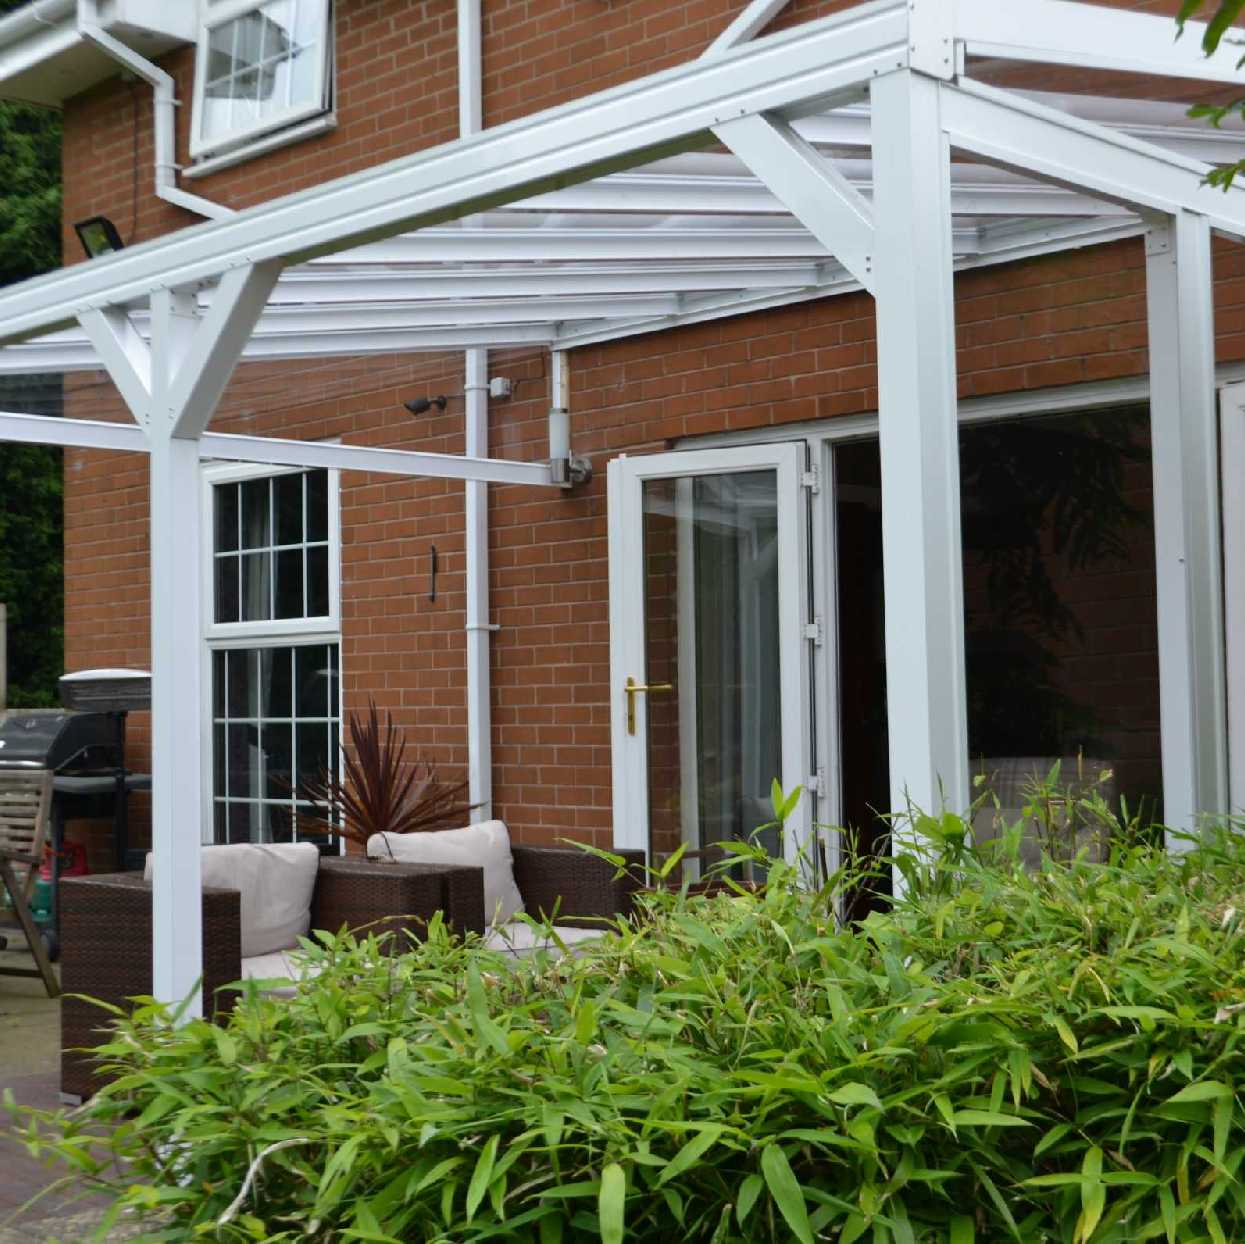 Omega Smart White Lean-To Canopy with 6mm Glass Clear Plate Polycarbonate Glazing - 2.8m (W) x 3.0m (P), (2) Supporting Posts from Omega Build